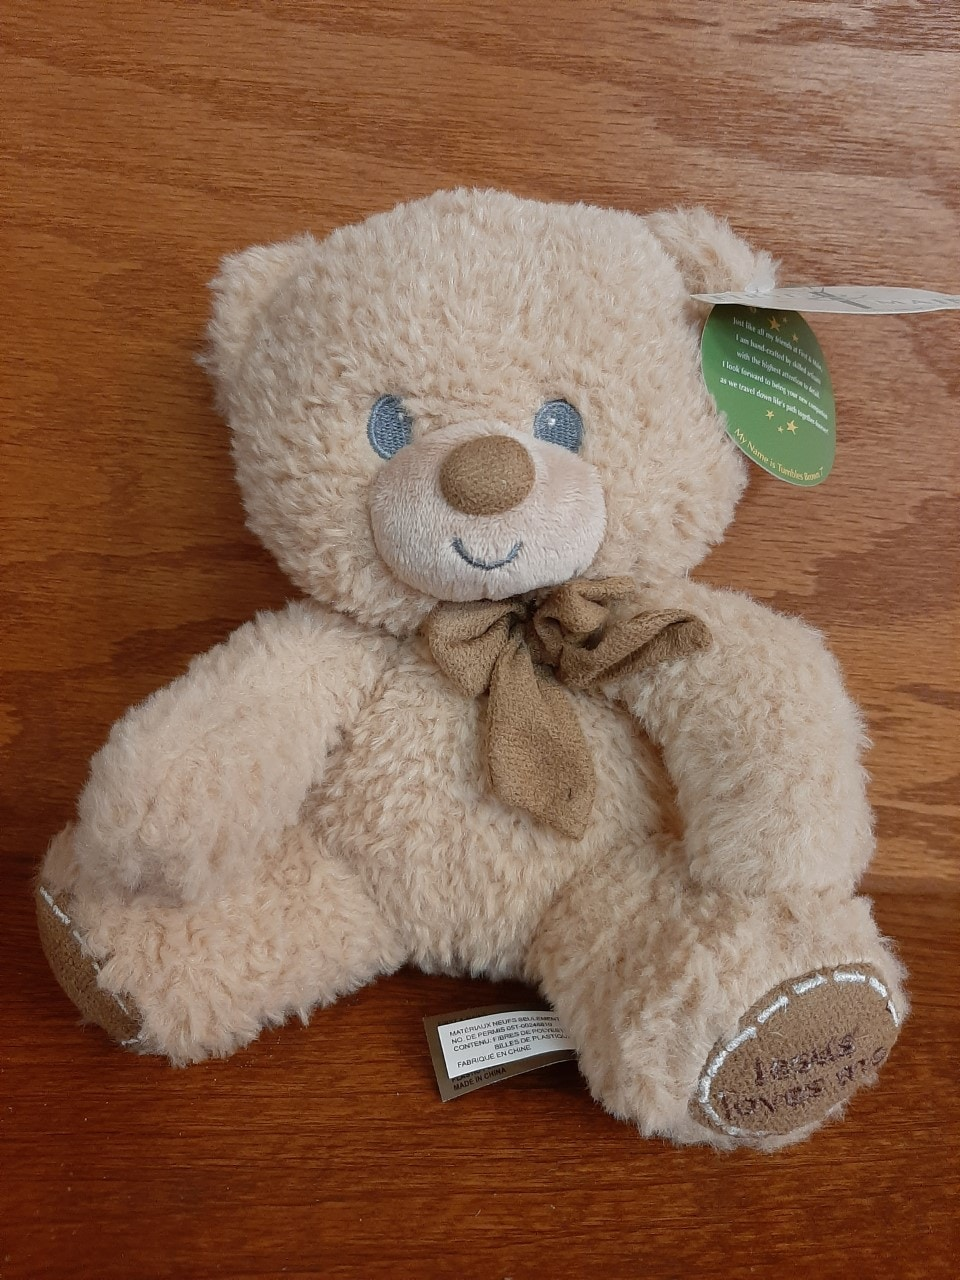 Stuffed Animal - Bear, Jesus Loves Me